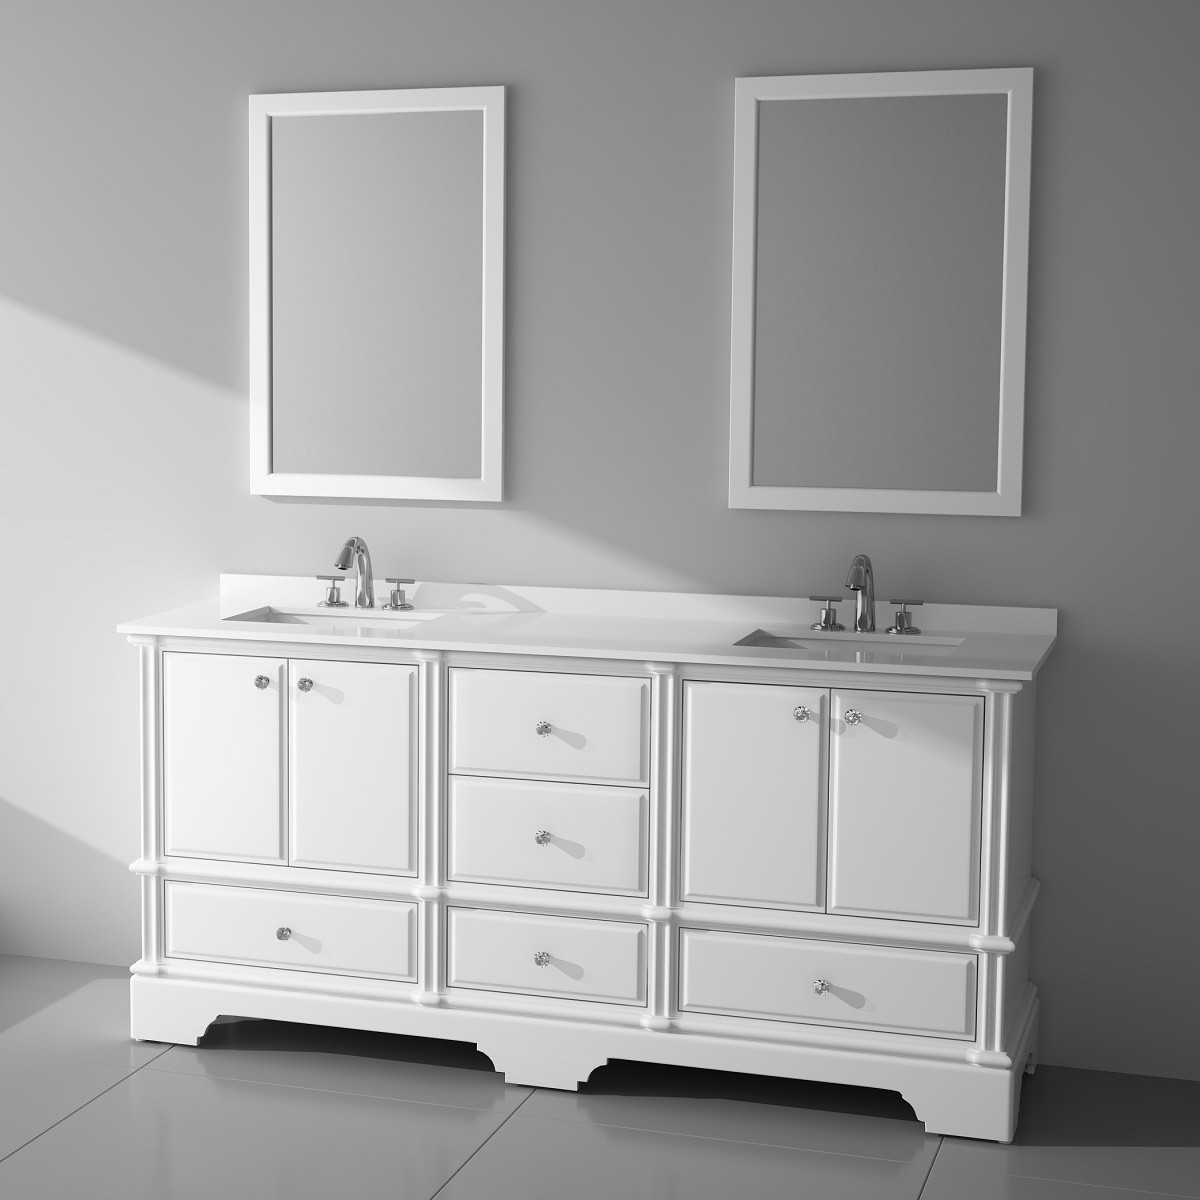 doors and top vanity poplin drawer with pin drawers kick toe split